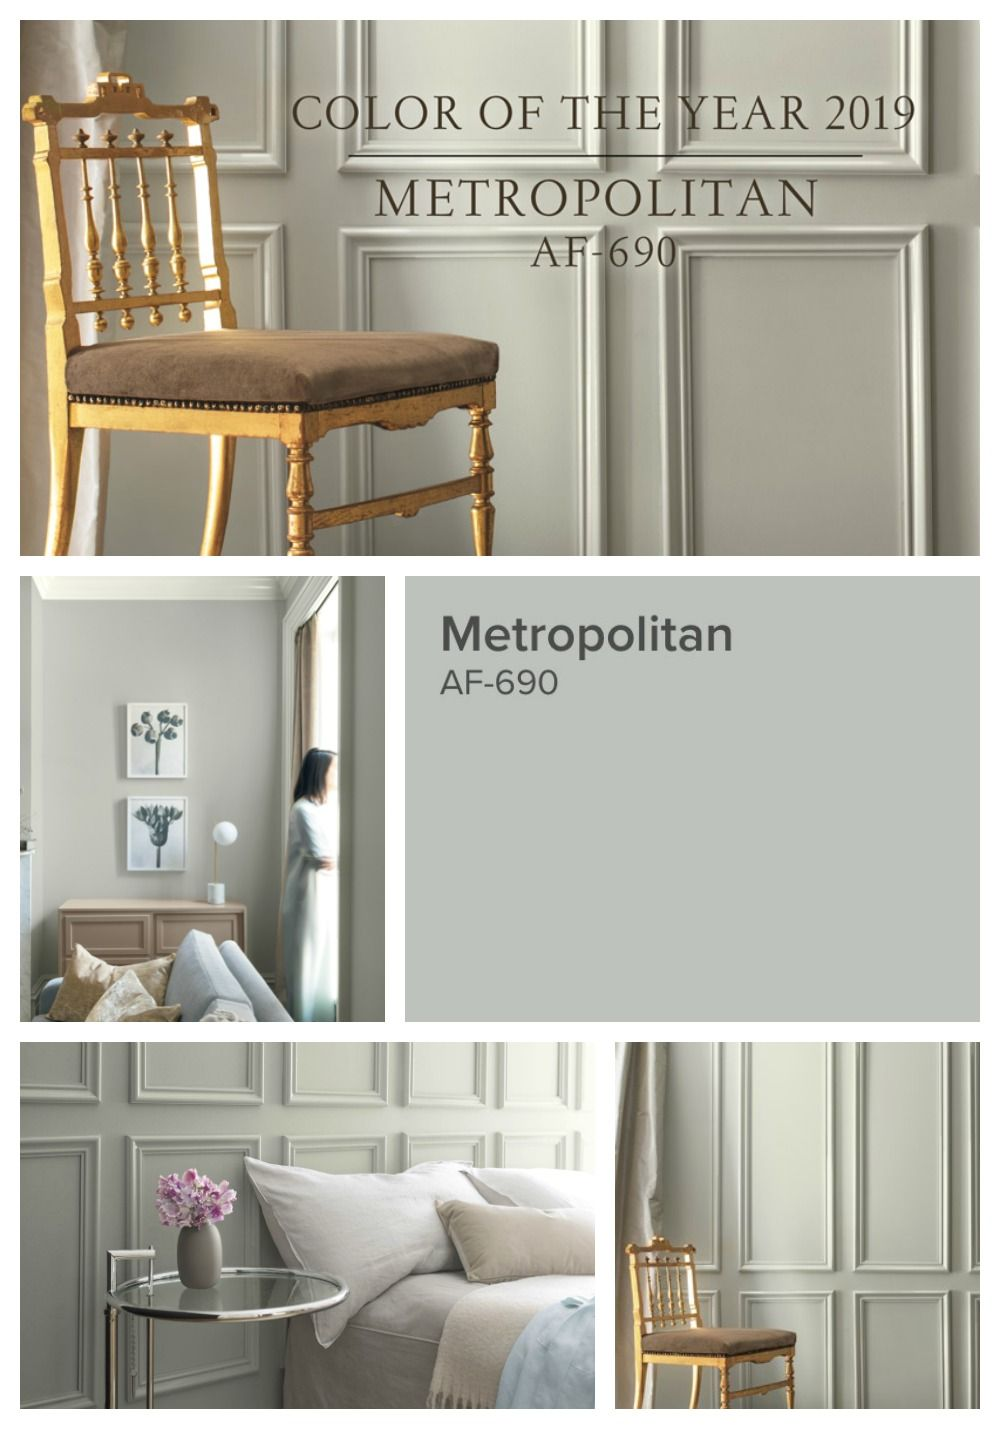 Benjamin Moore Bedroom Colors 2019 Colors Of The Year Paint Colors Gray Paint Colors For